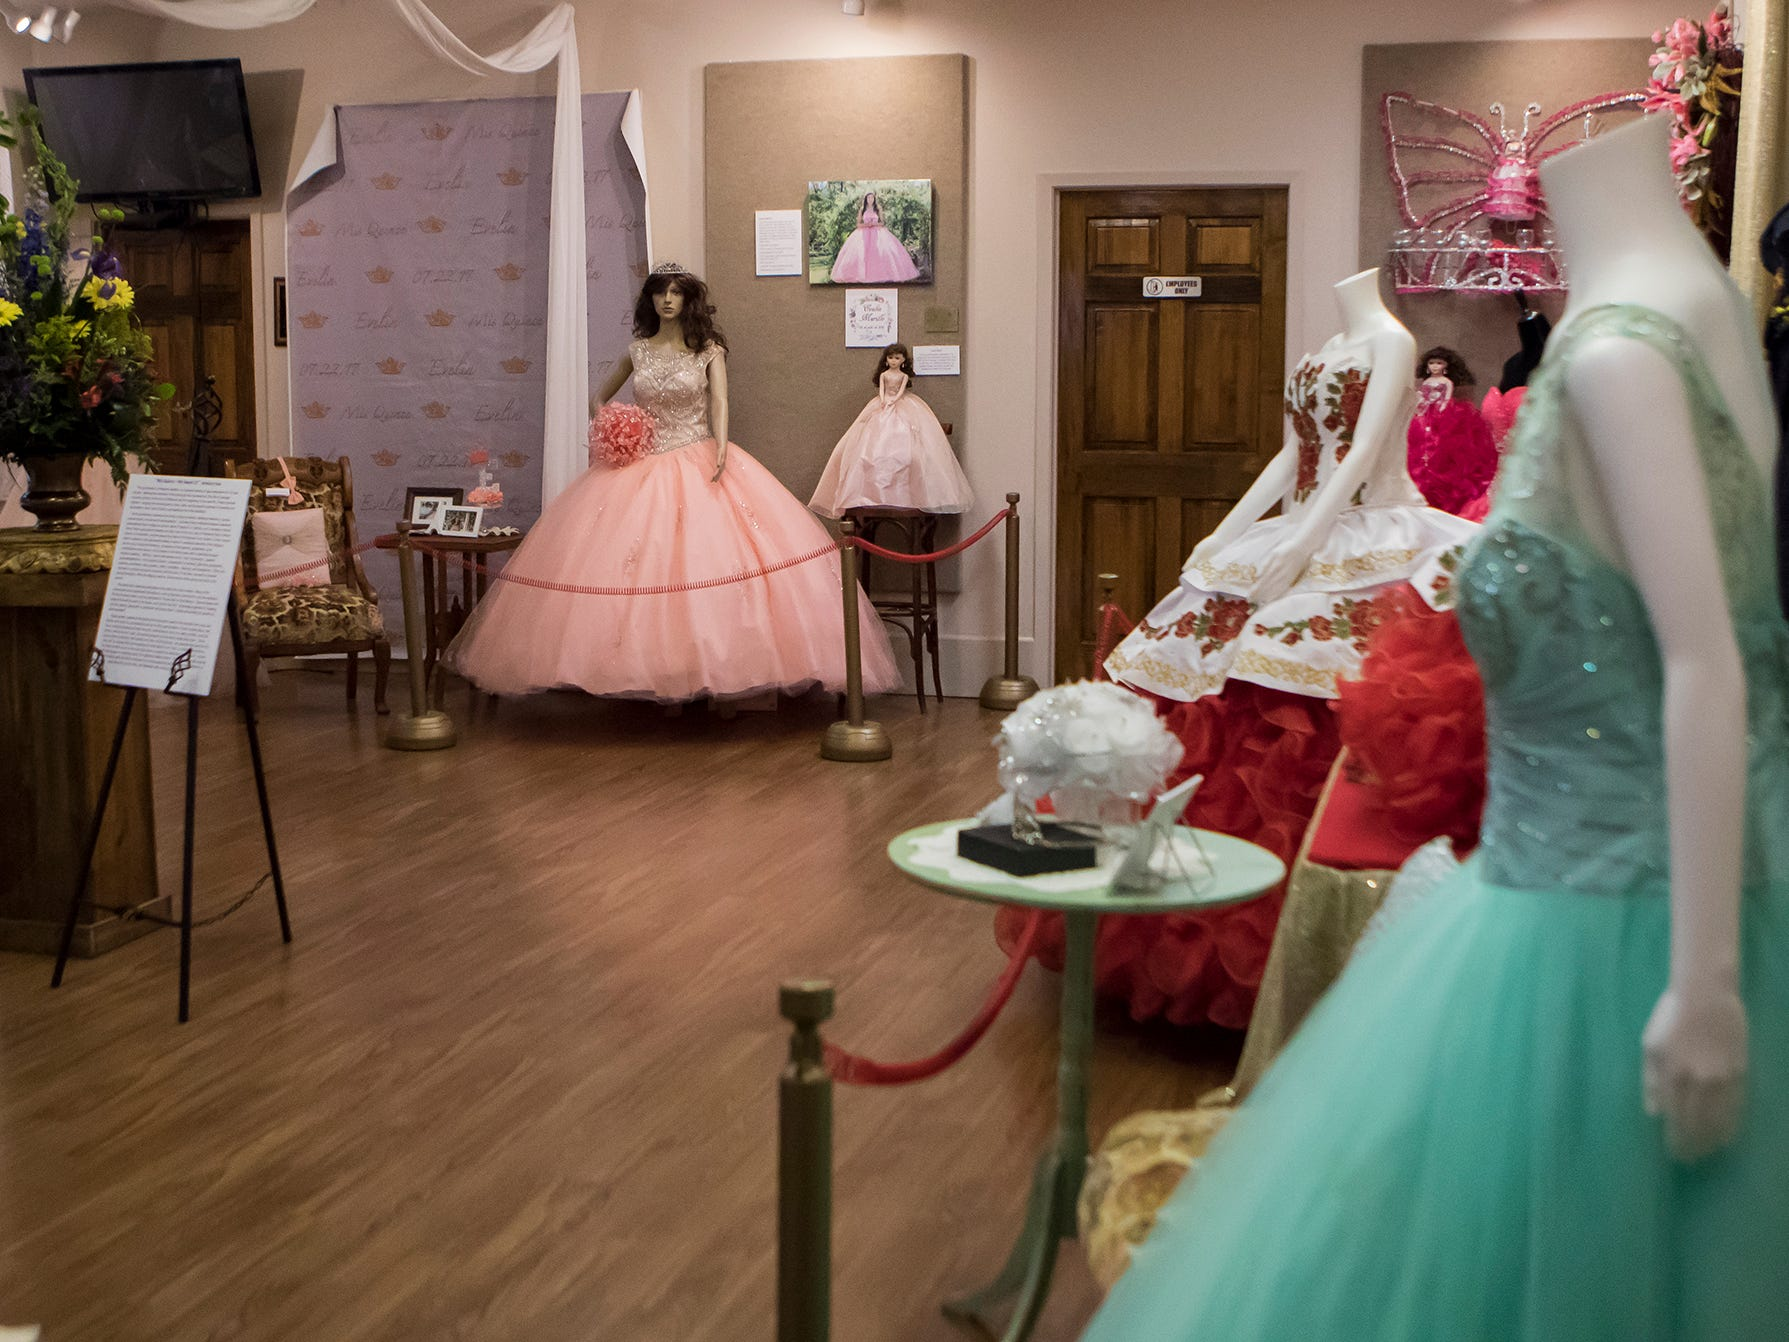 Quinceañera dresses and accessories from local Farmerville, La. girls sit on display at the Union Museum of History and Art in Farmerville, La. as part of an exhibit highlighting Hispanic culture in Union Parish on Feb. 7. Quinceañeras are traditional celebrations for 15 year old girls to signify their transition into womanhood.